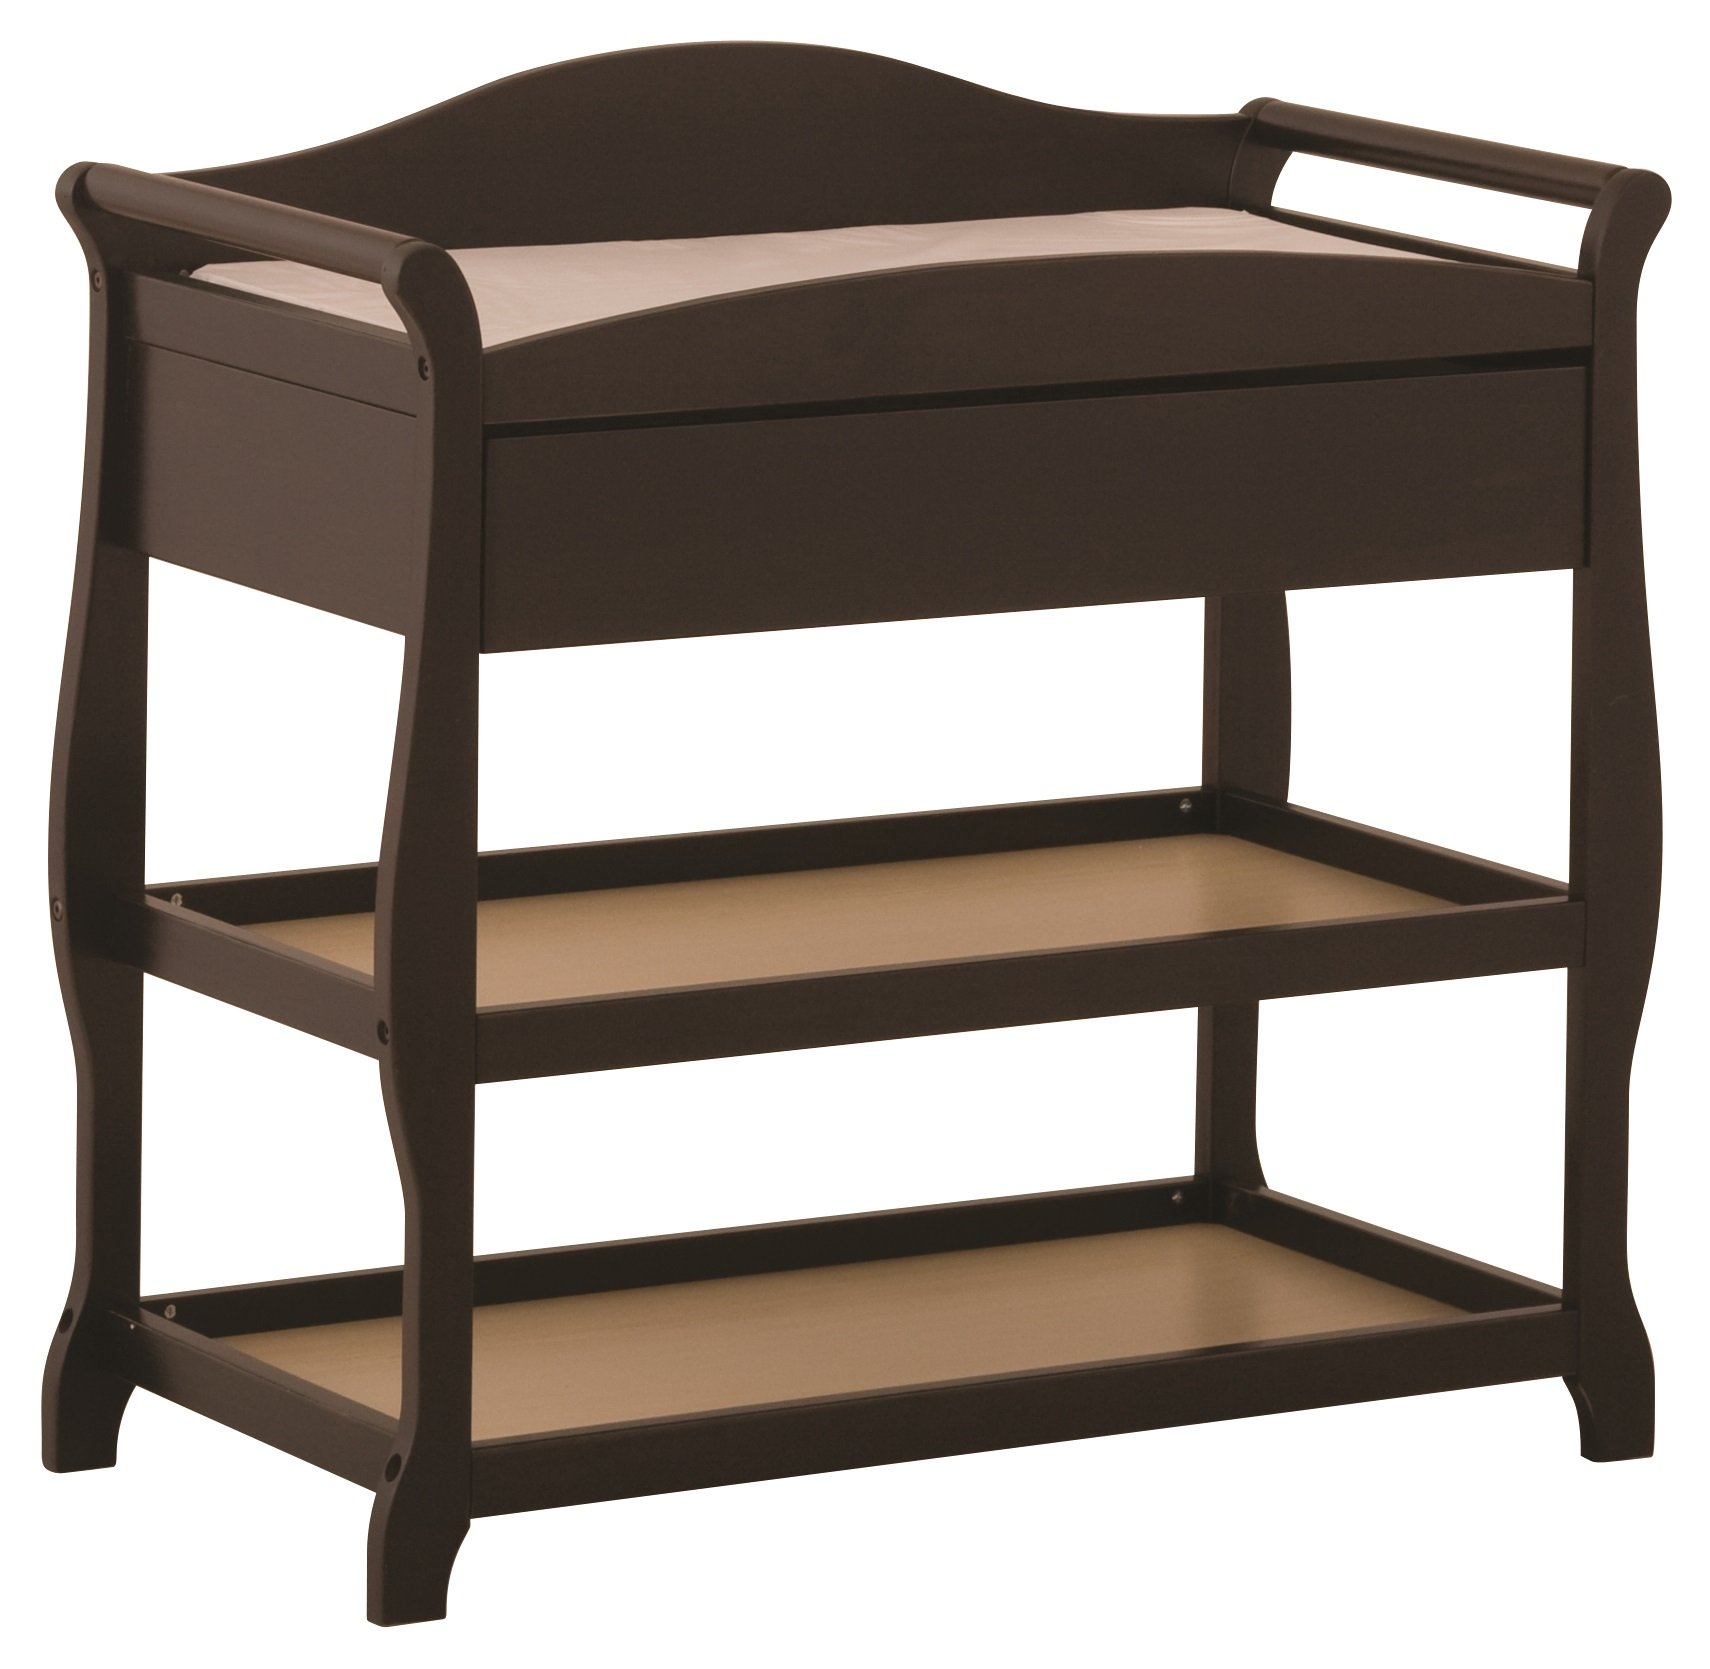 Storkcraft Aspen Changing Table with Drawer, Espresso, Sleigh Design Changing Table with Changing Pad and Safety Strap, Oversized Drawer and Two Storage Shelves by Storkcraft